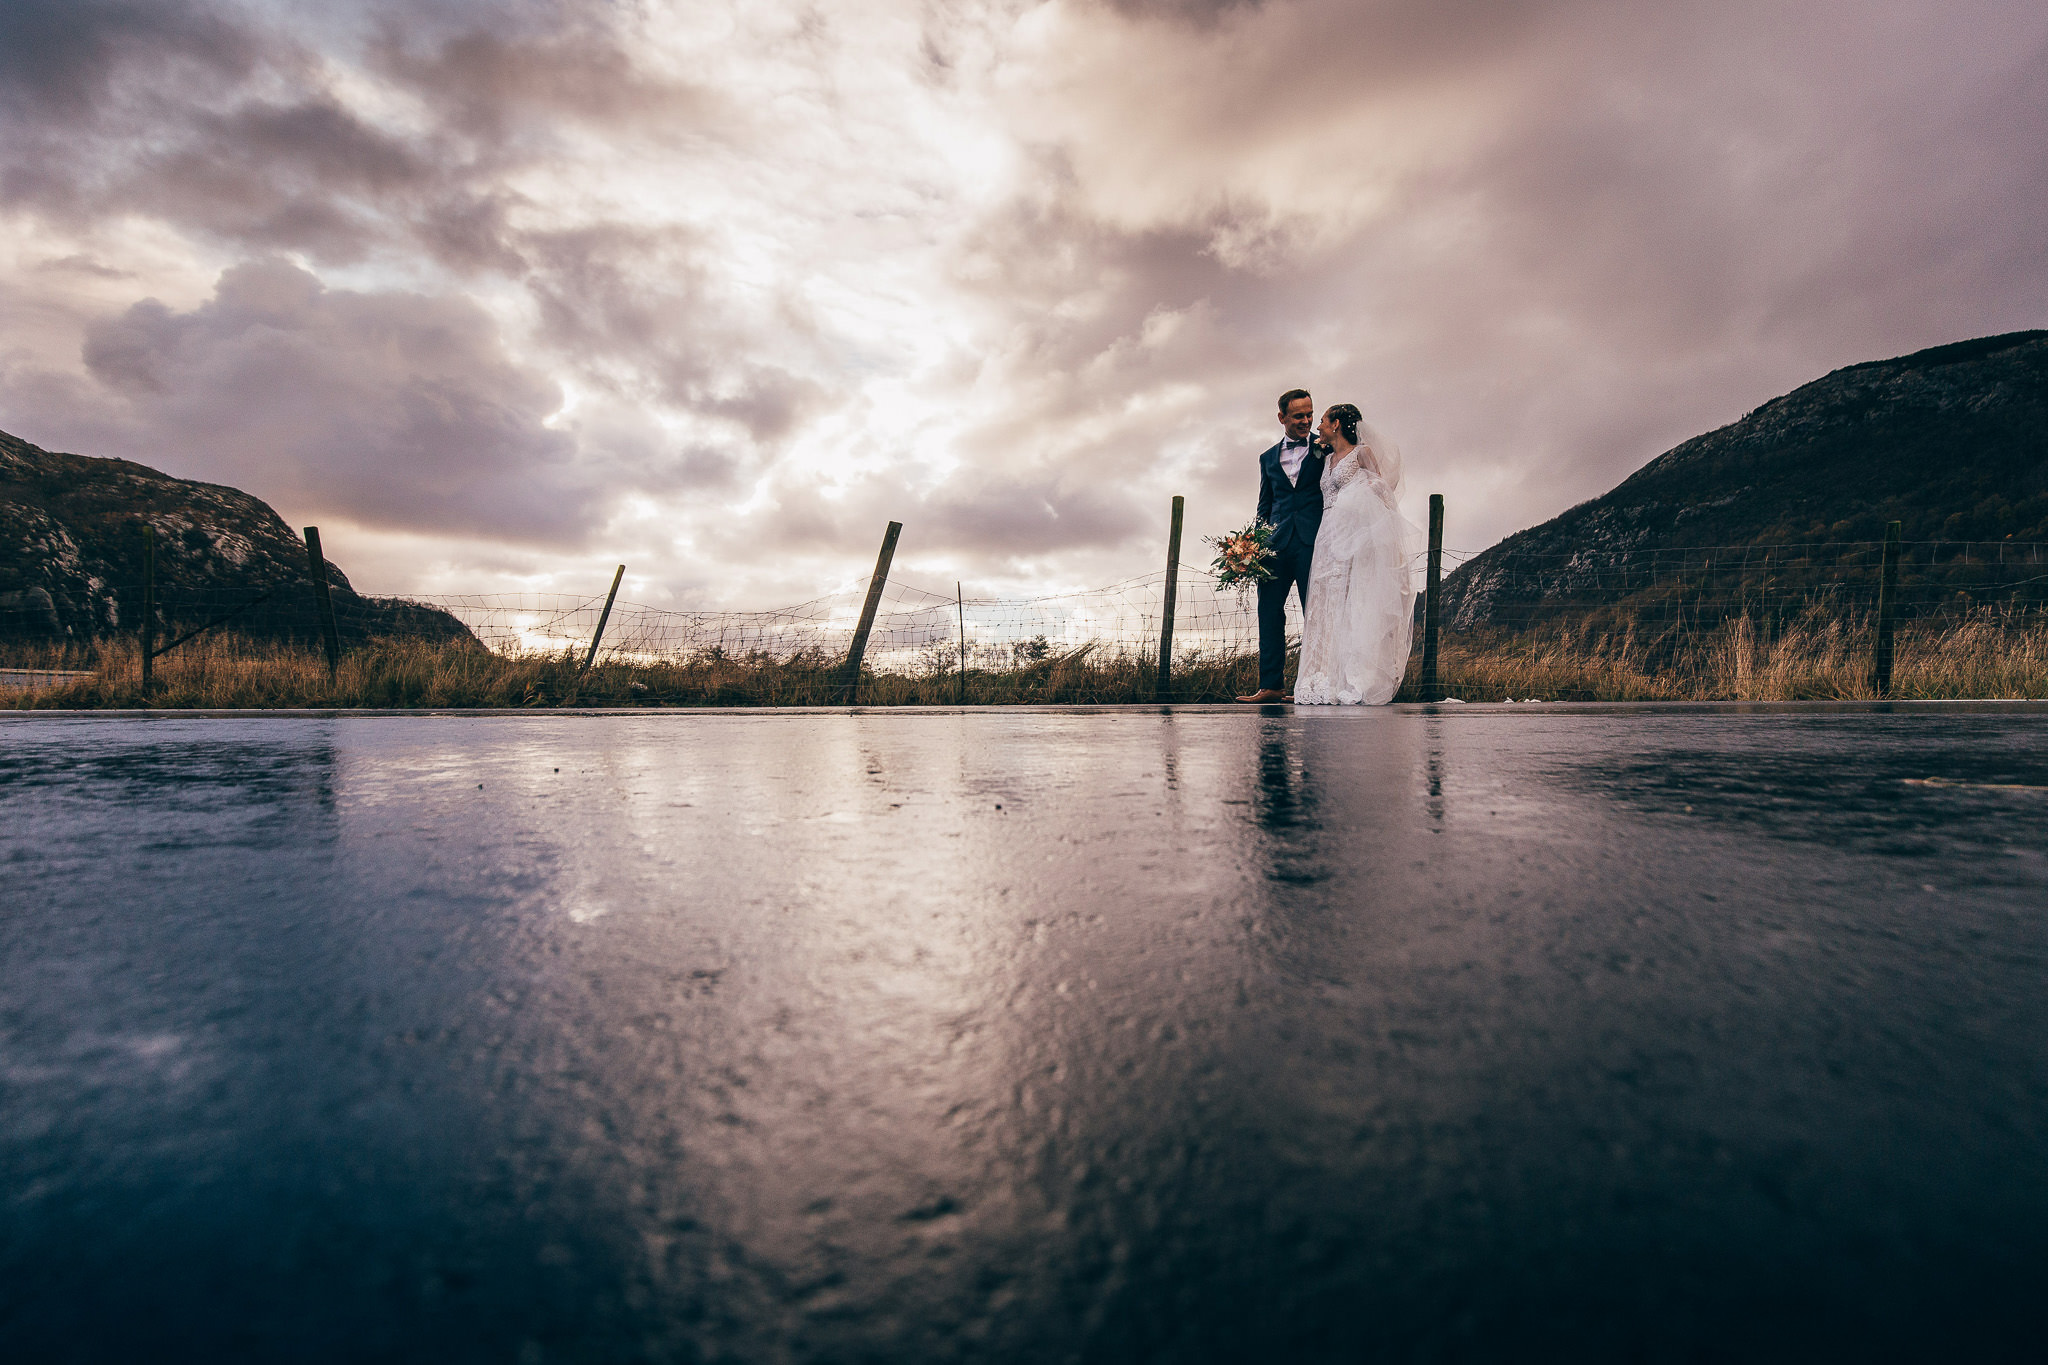 Norway+wedding+photographer+elopement+pre+wedding+Rogaland+bryllupsfotograf+Casey+Arneson-225.jpg